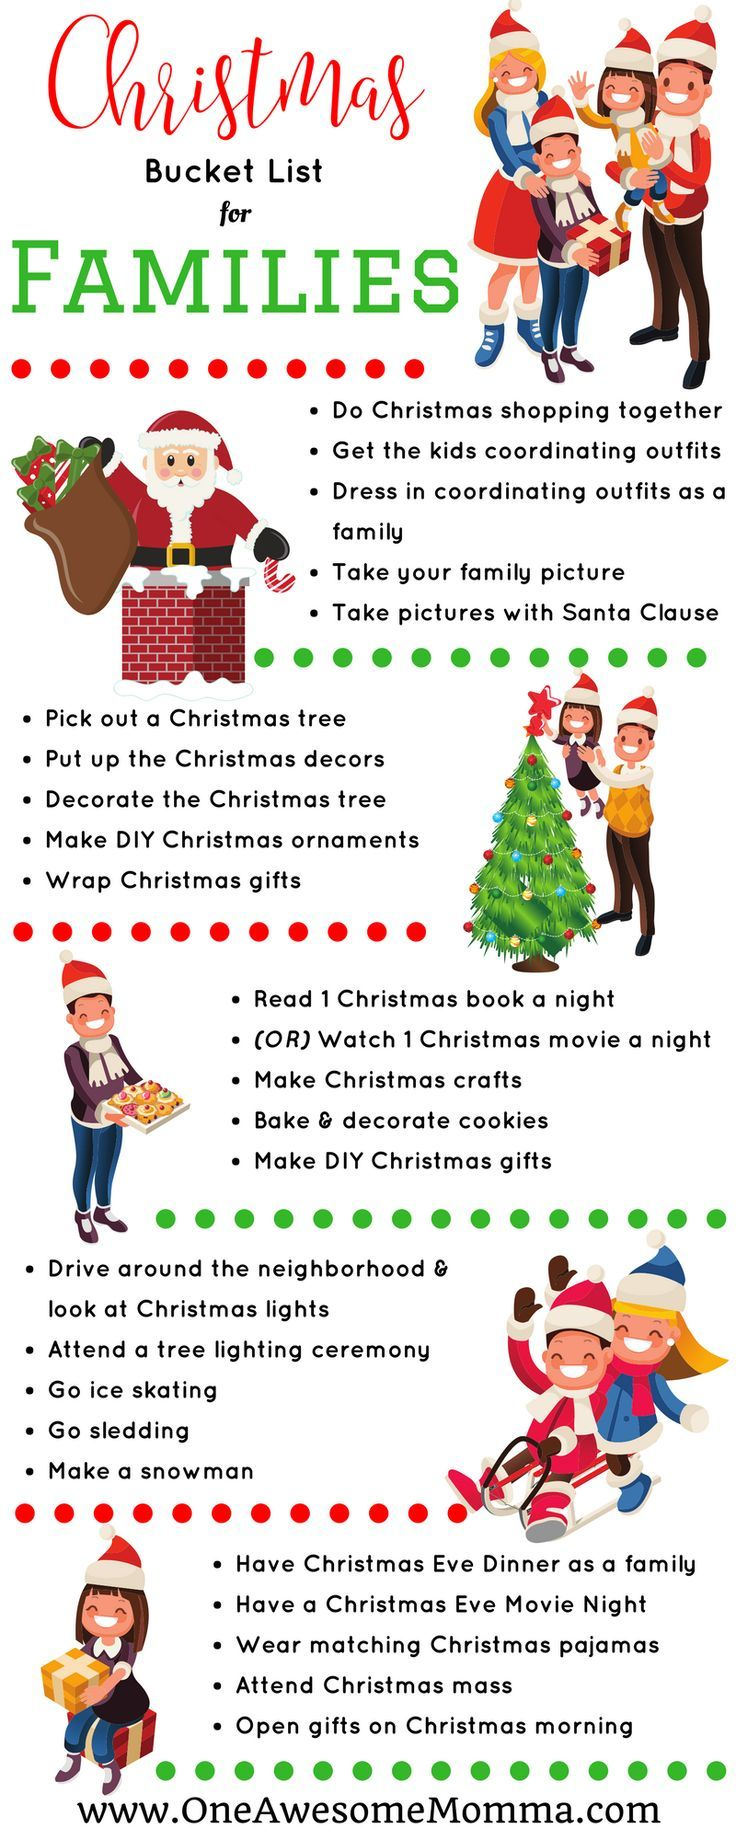 12 Memorable Christmas Tradition Ideas To Do With Your Family ...